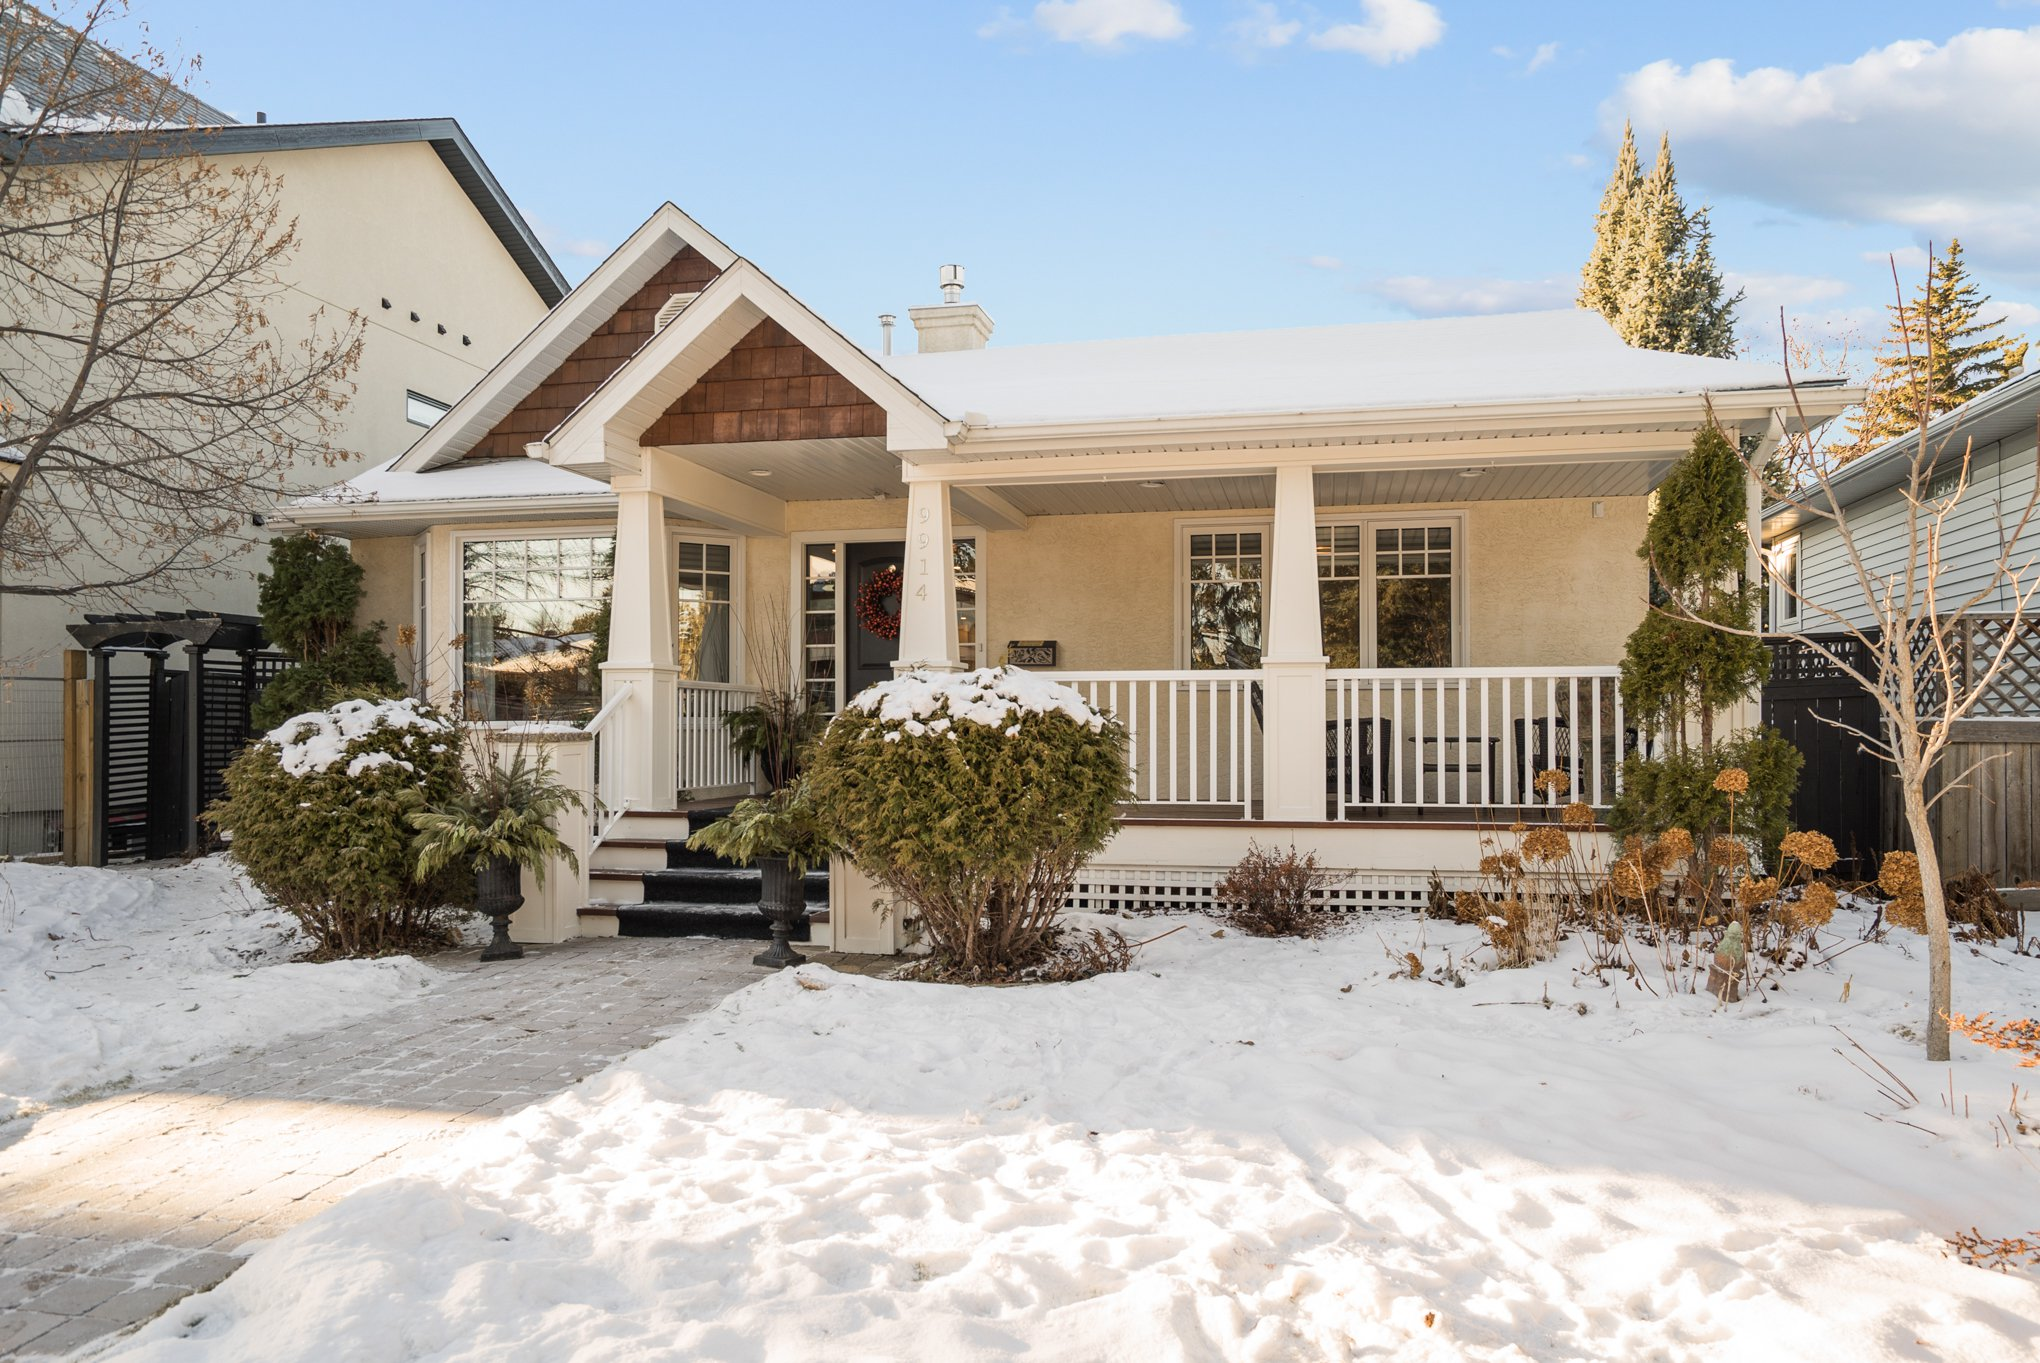 Main Photo: 9914 145 Street NW in Edmonton: Crestwood House for sale : MLS®# E4091899